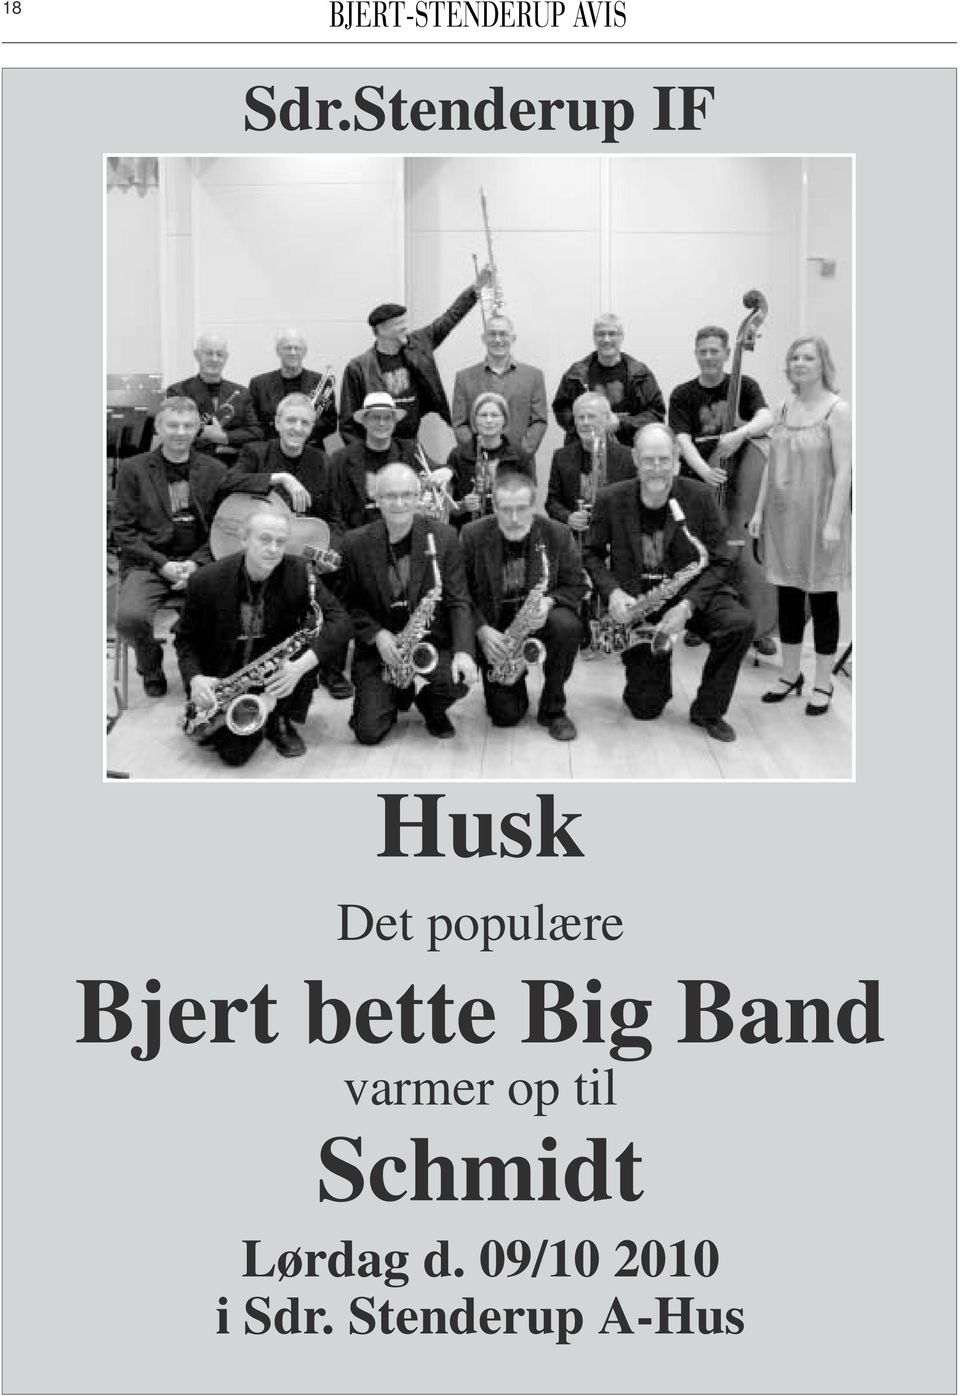 Bjert bette Big Band varmer op